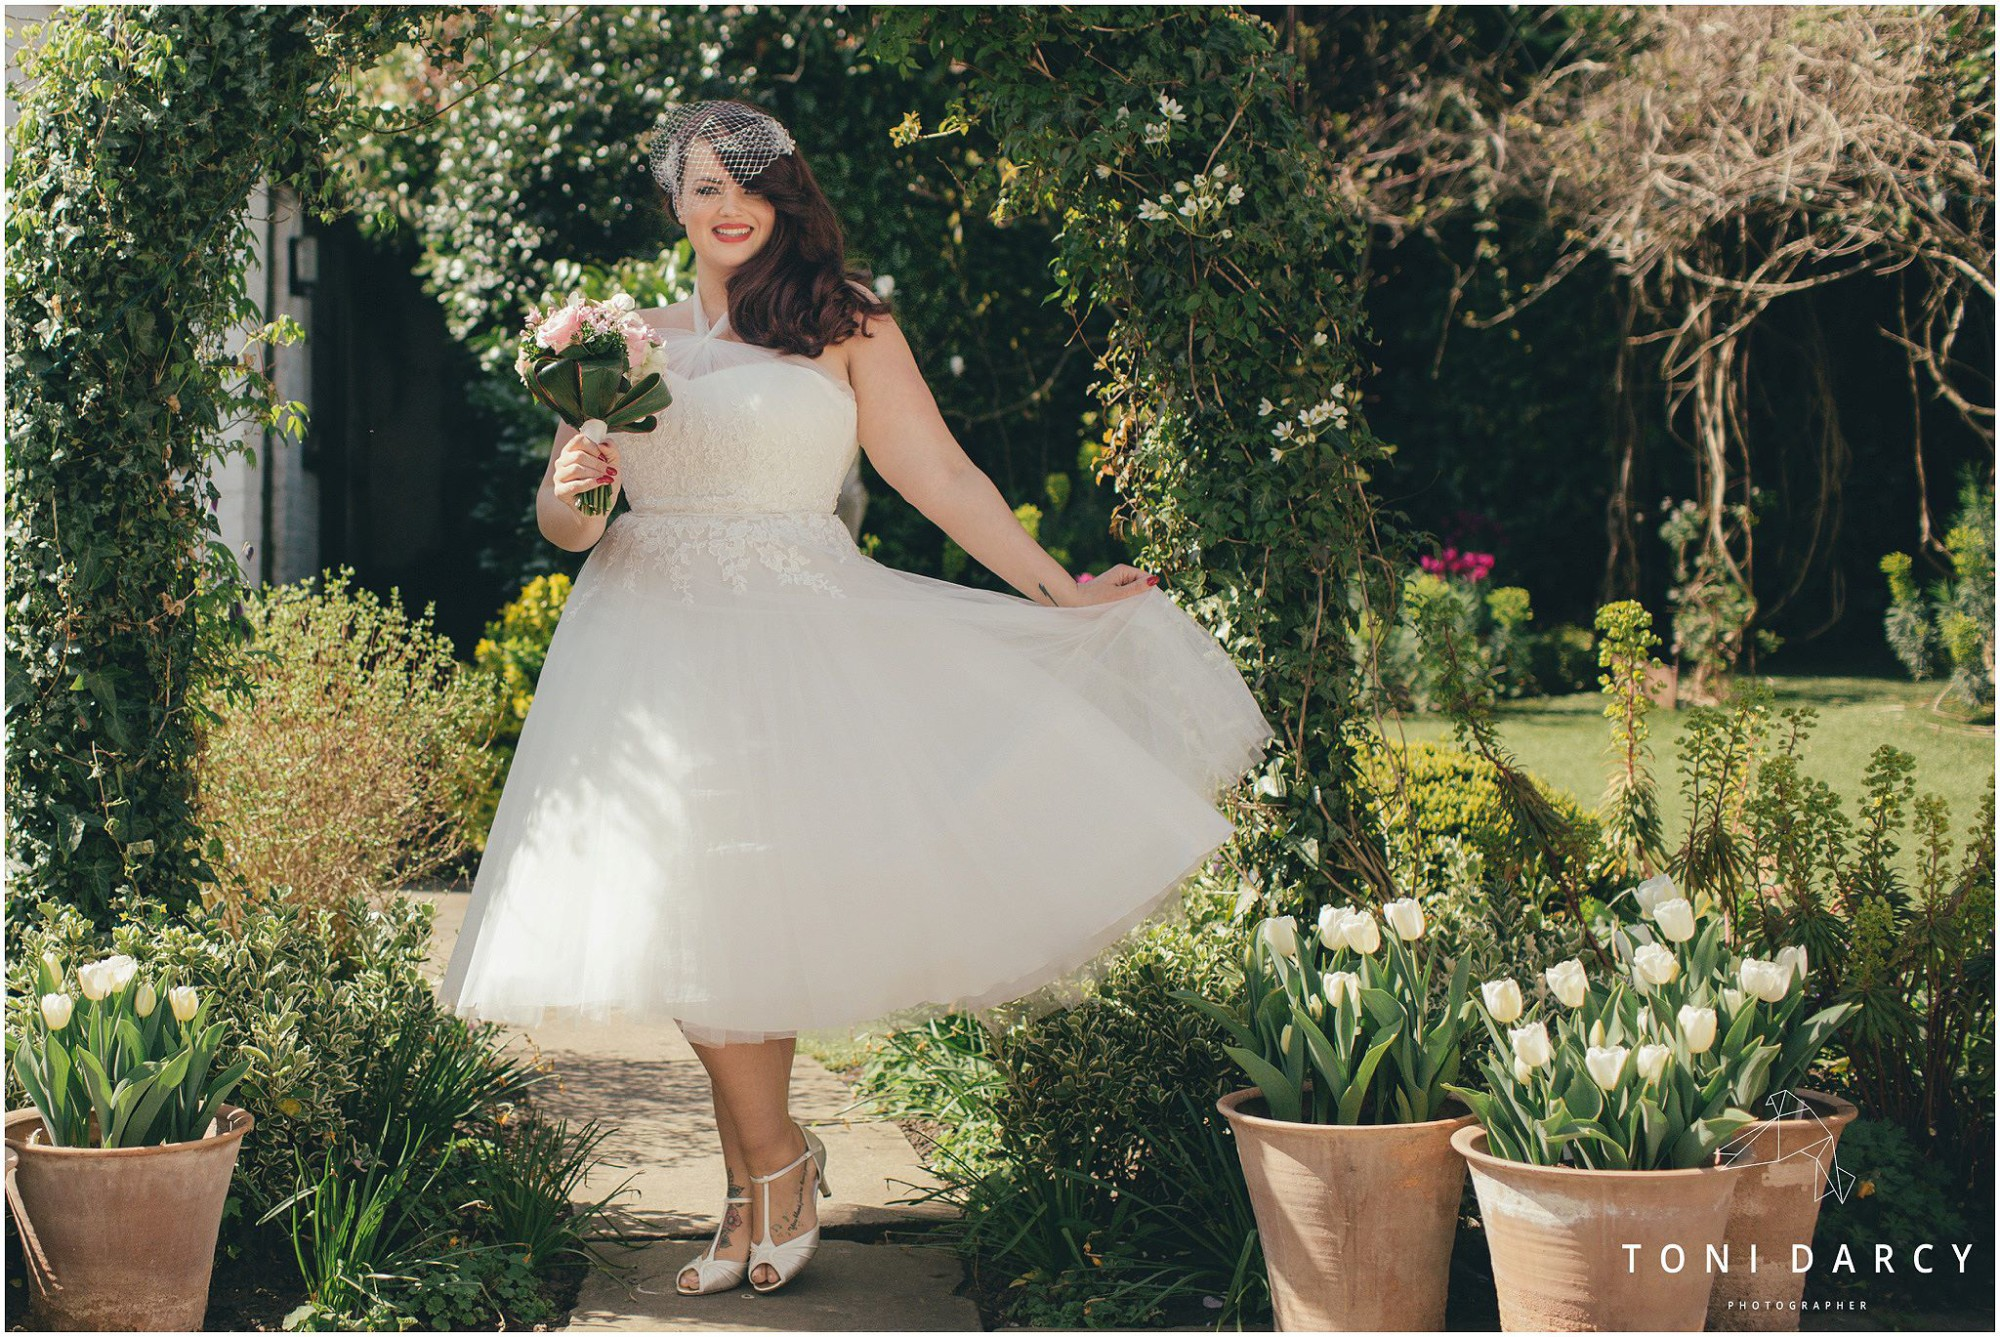 By Toni Darcy for Edith&Winston Bridalwear